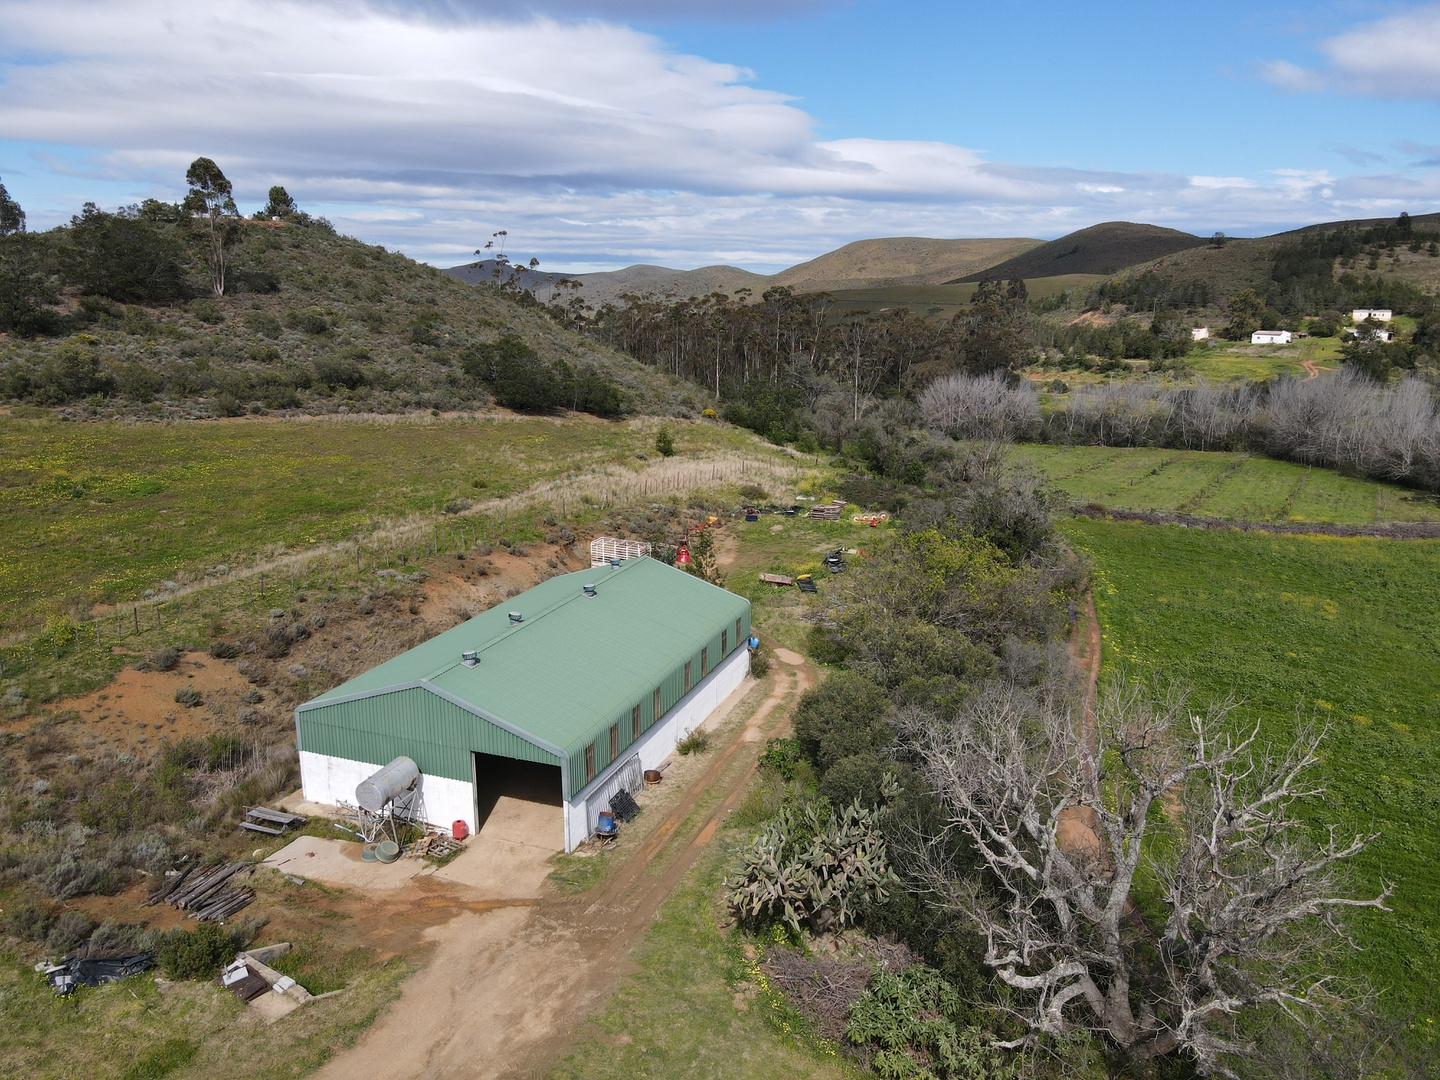 Land in Swellendam - Shed